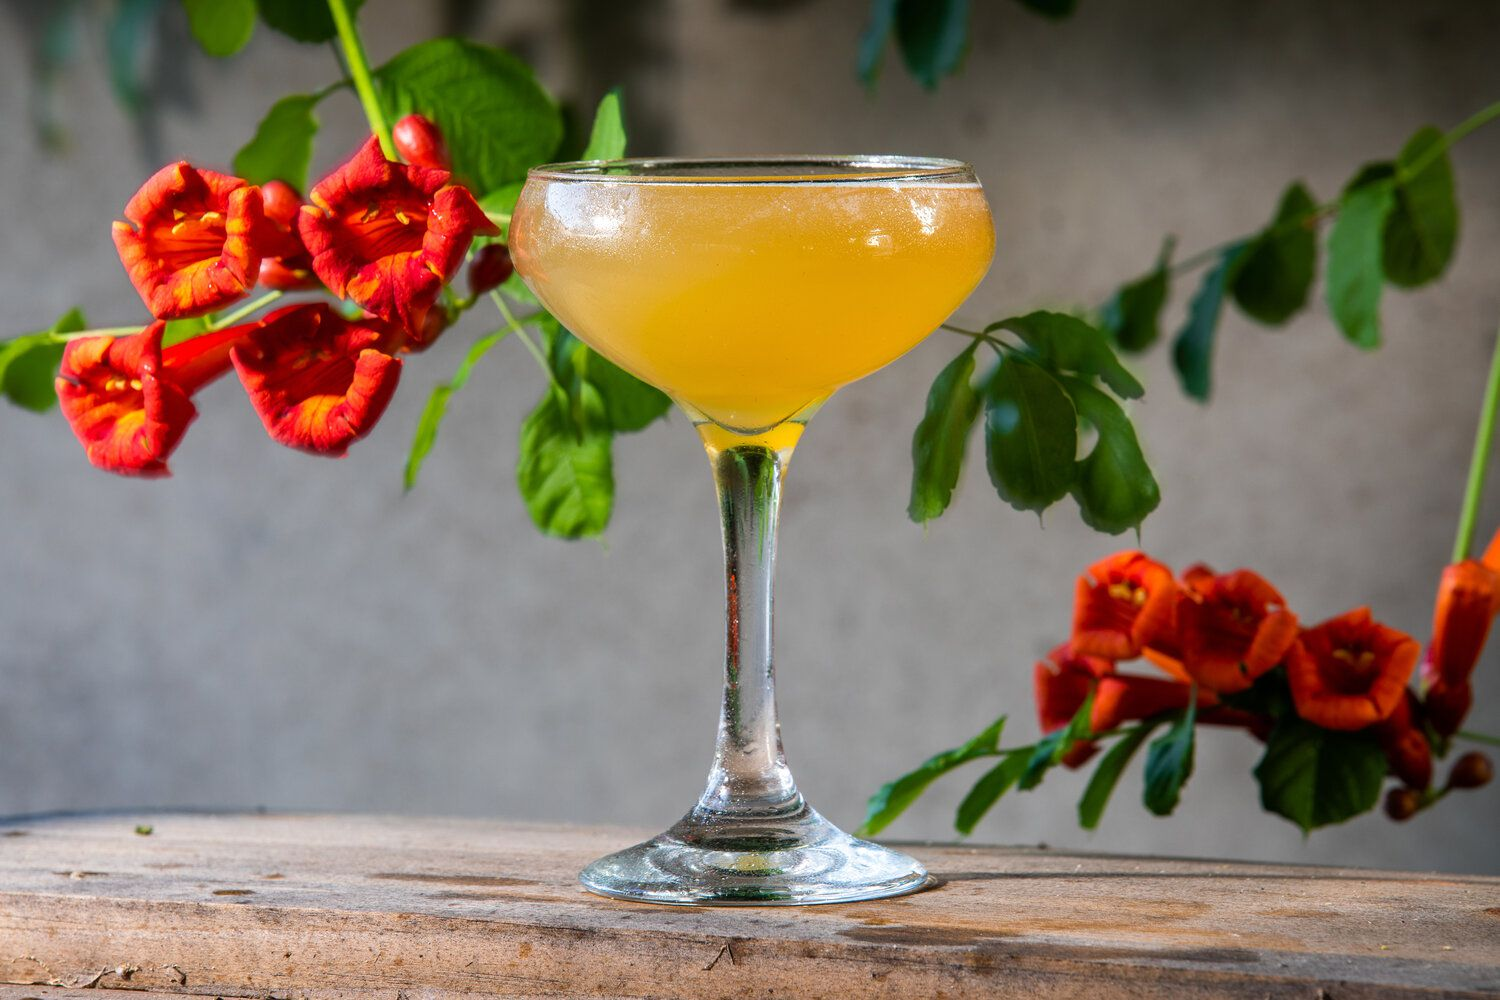 The Honeysuckle cocktail at Hurdy Gurdy is made with rum, lime juice, honey, egg white and bitters. Hurdy Gurdy is expected to open in October 2020.